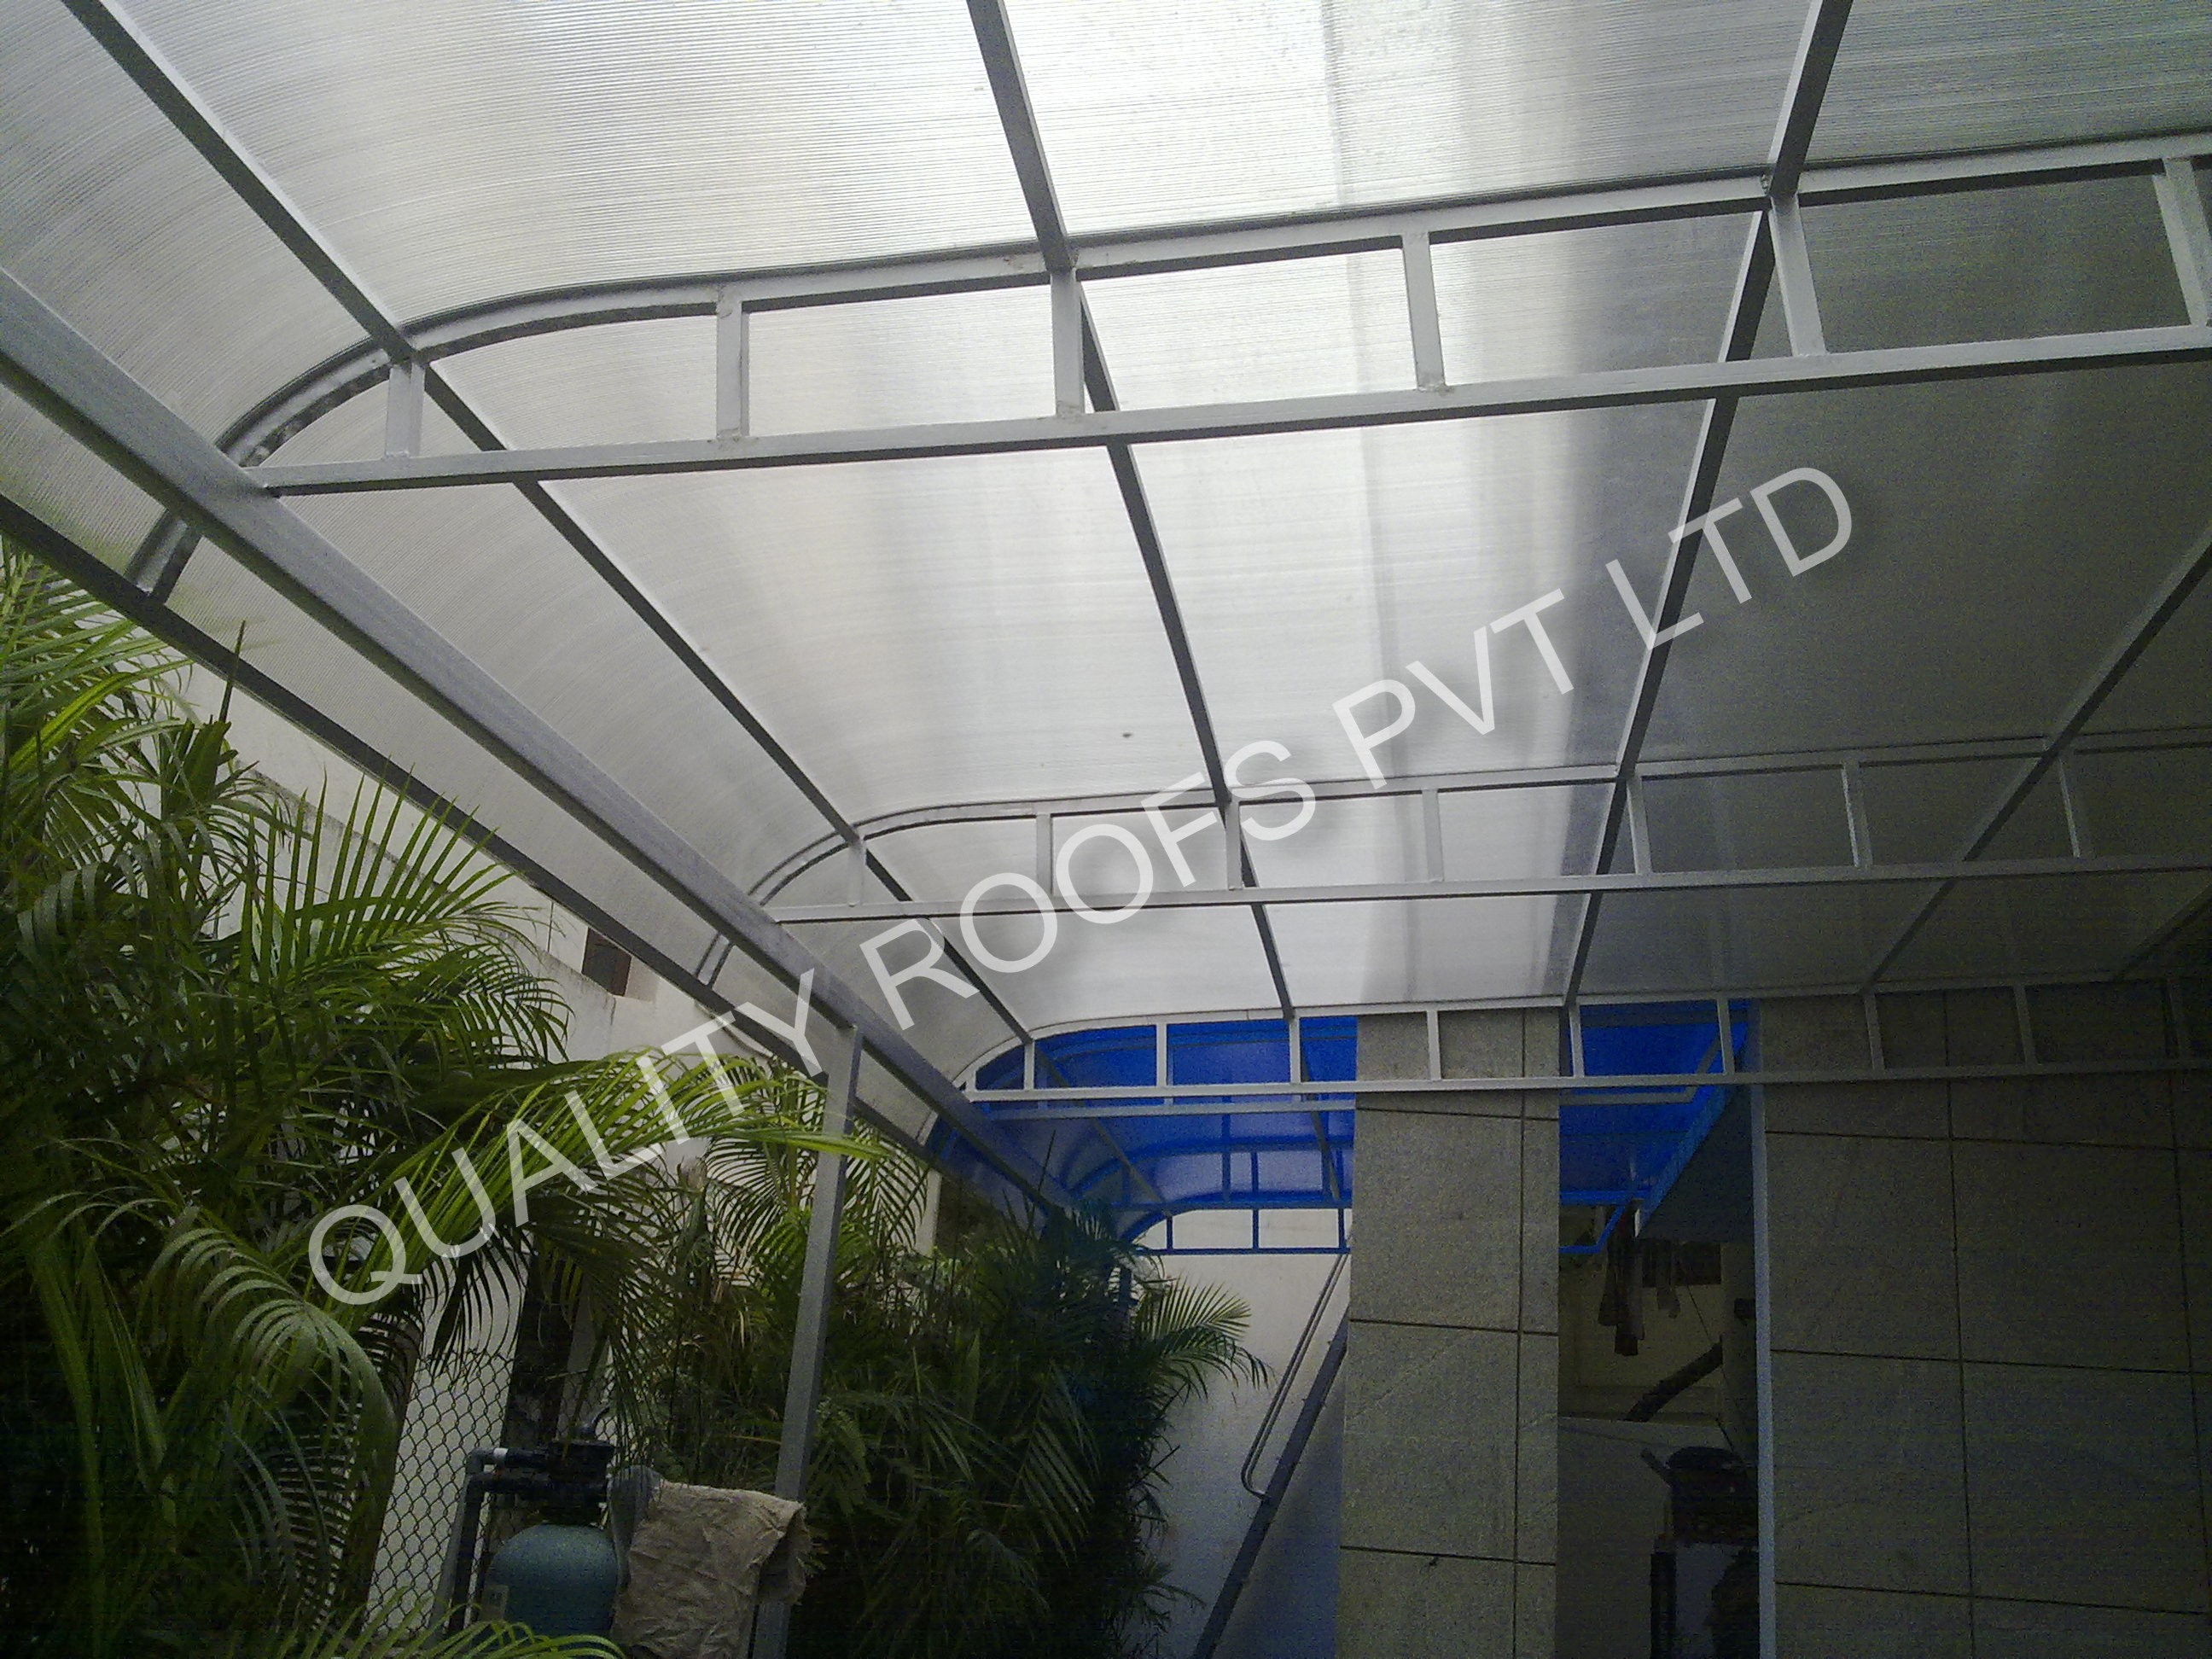 Polycarbonate Roofing Chennai                 We are the Leading Polycarbonate Roofing Chennai. Our organization has been engaged in the trading and supplying a quality range of Polycarbonate Roofing sheets. These sheets have proven to versatile and efficient in all domestic and industrial applications like banks, coffee shops, hotels, public spaces, banks, hospital etc. Our sheets serve excellently for the purpose of insulation and help in moderating the temperature. They also feature excellent reflective properties. Easy installation and low maintenance makes our Polycarbonate Roofing sheets an ideal choice for porches, dormer windows, Skylights and commercial spaces.